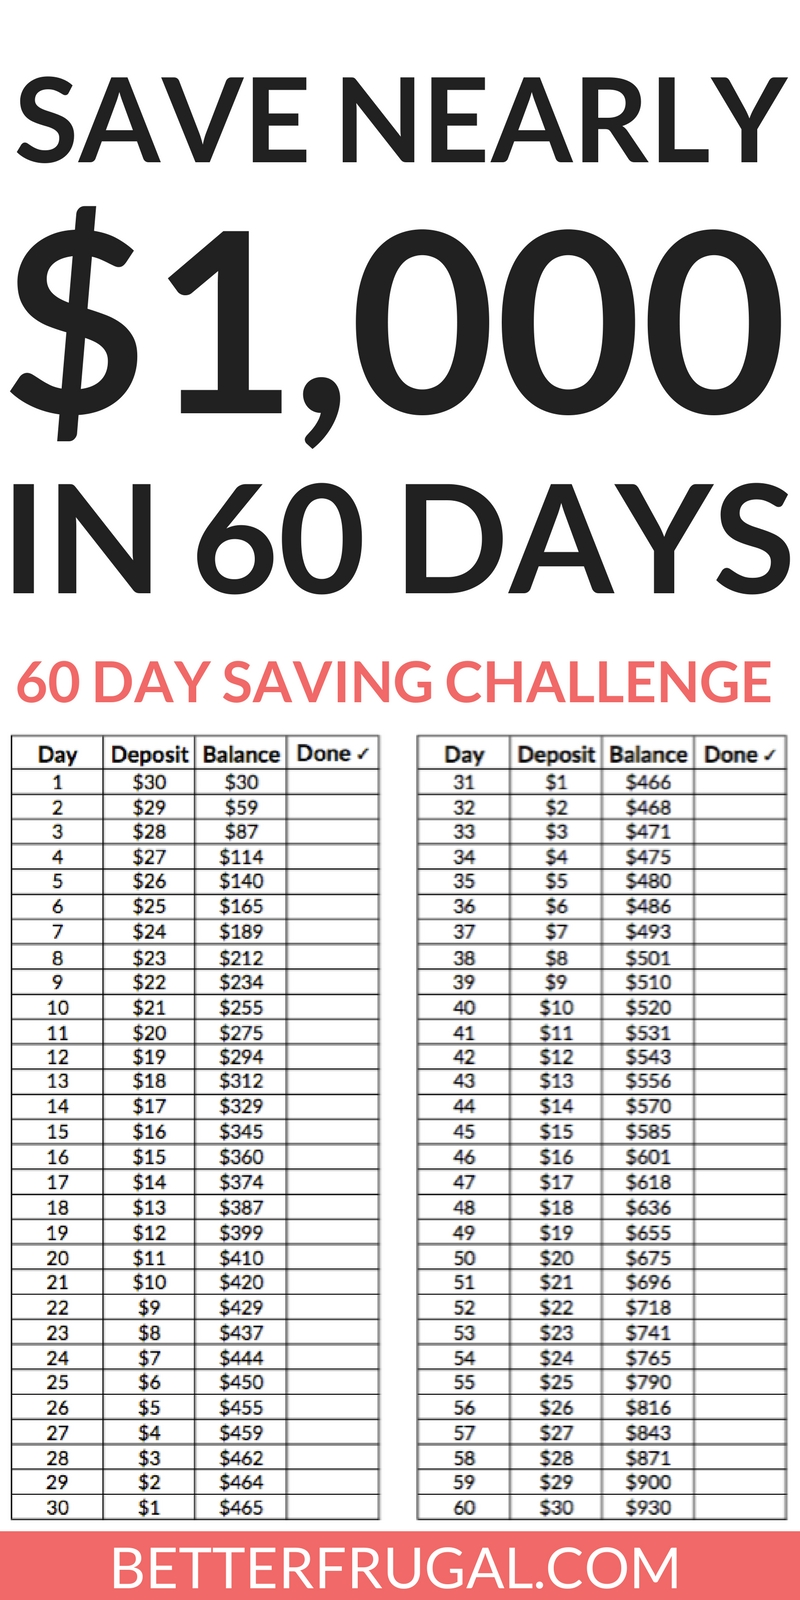 Money-Saving Challenge: How To Save $1,000 In 60 Days